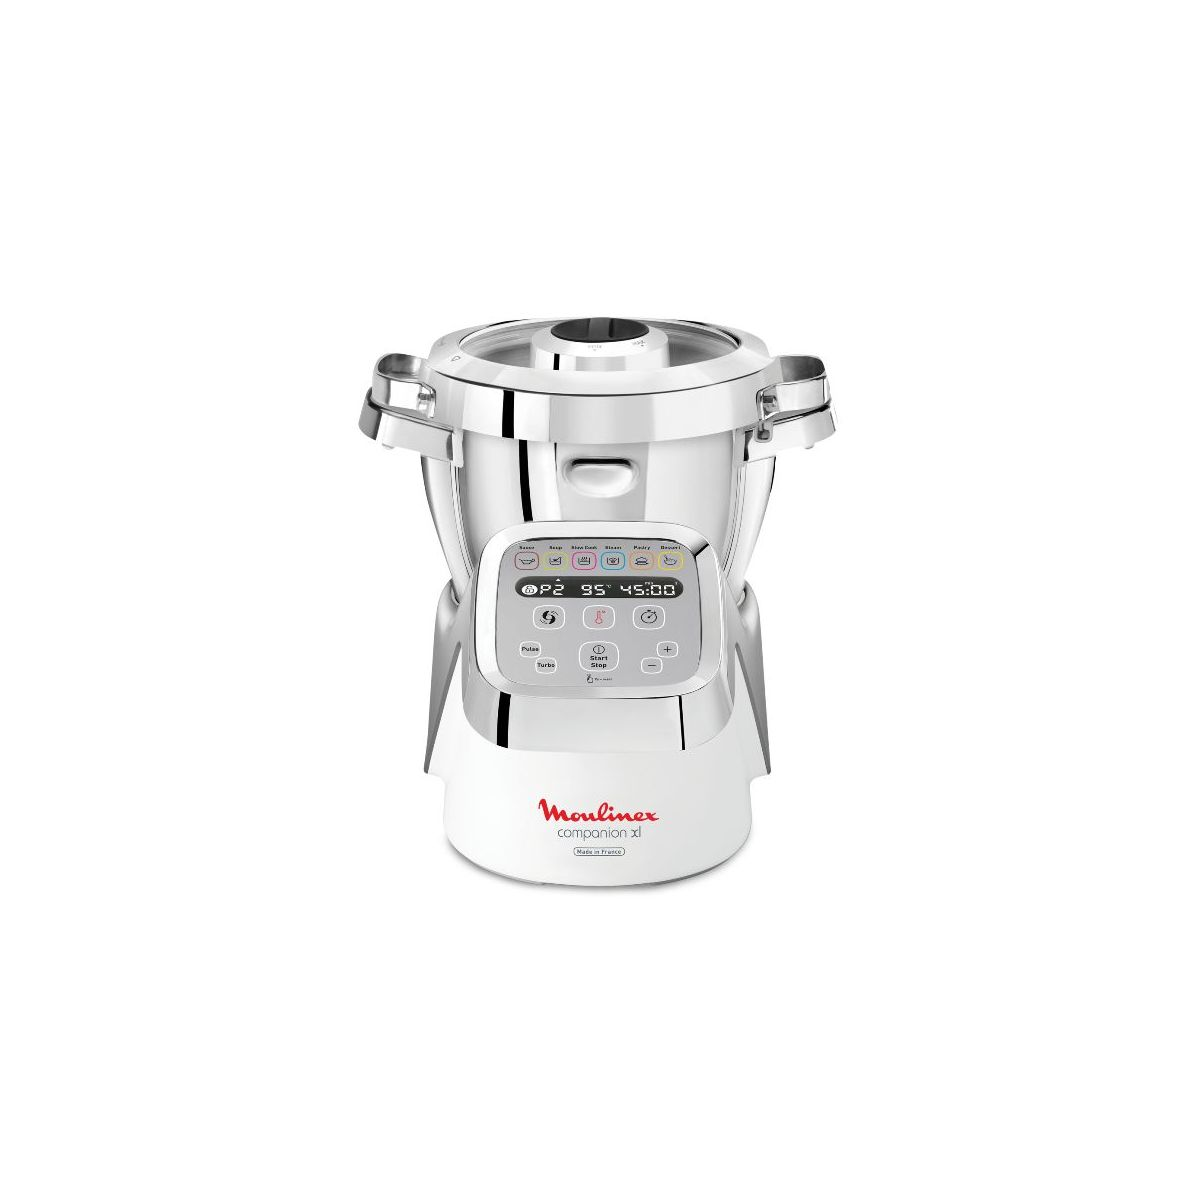 Moulinex Robot Cooker 3l 8 10 People 12 Speeds Book 300 Recipes